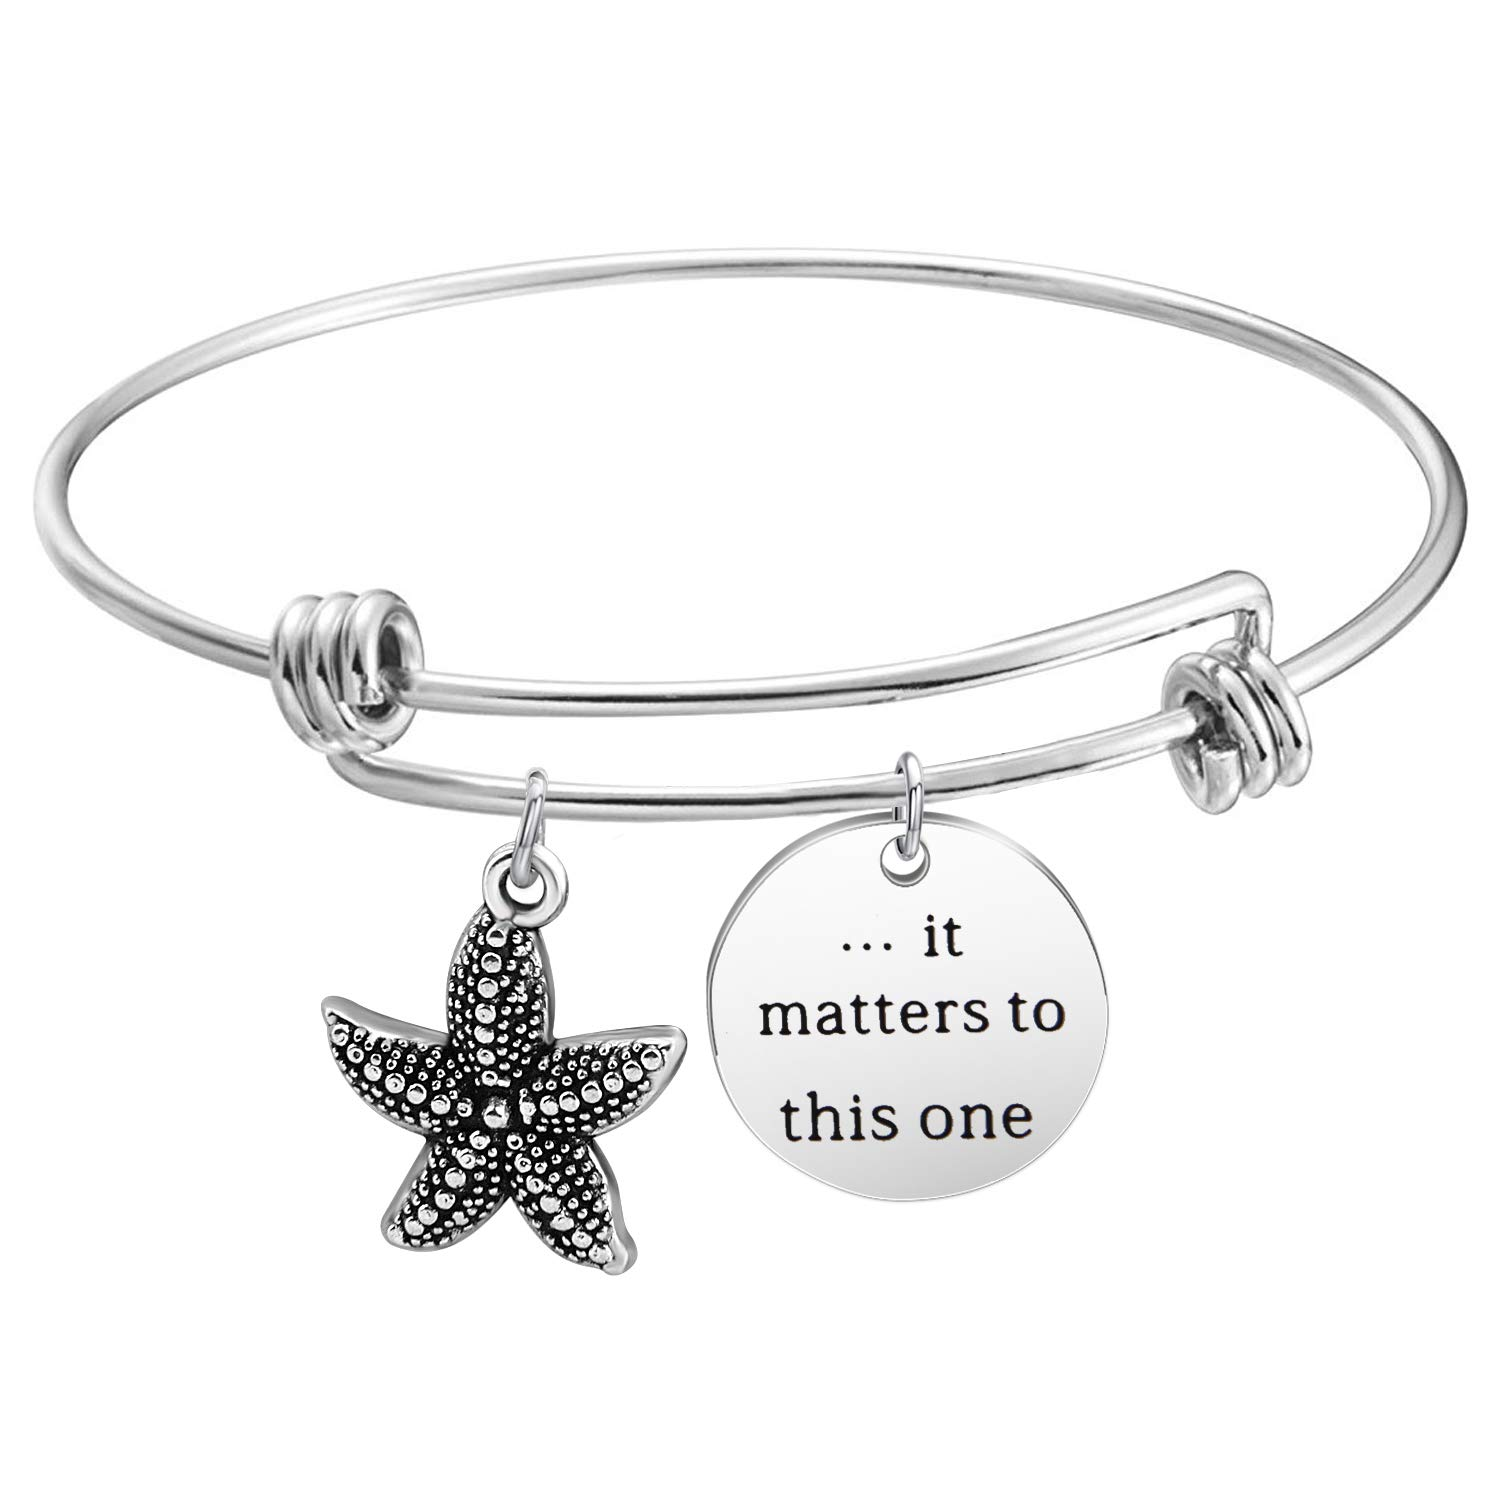 HOLLP Social Worker Gift Adoption Bracelet It Matters To This One Starfish Charm Bracelet Teacher Gift Idea Sea Star Jewelry B07G59JVK2_US